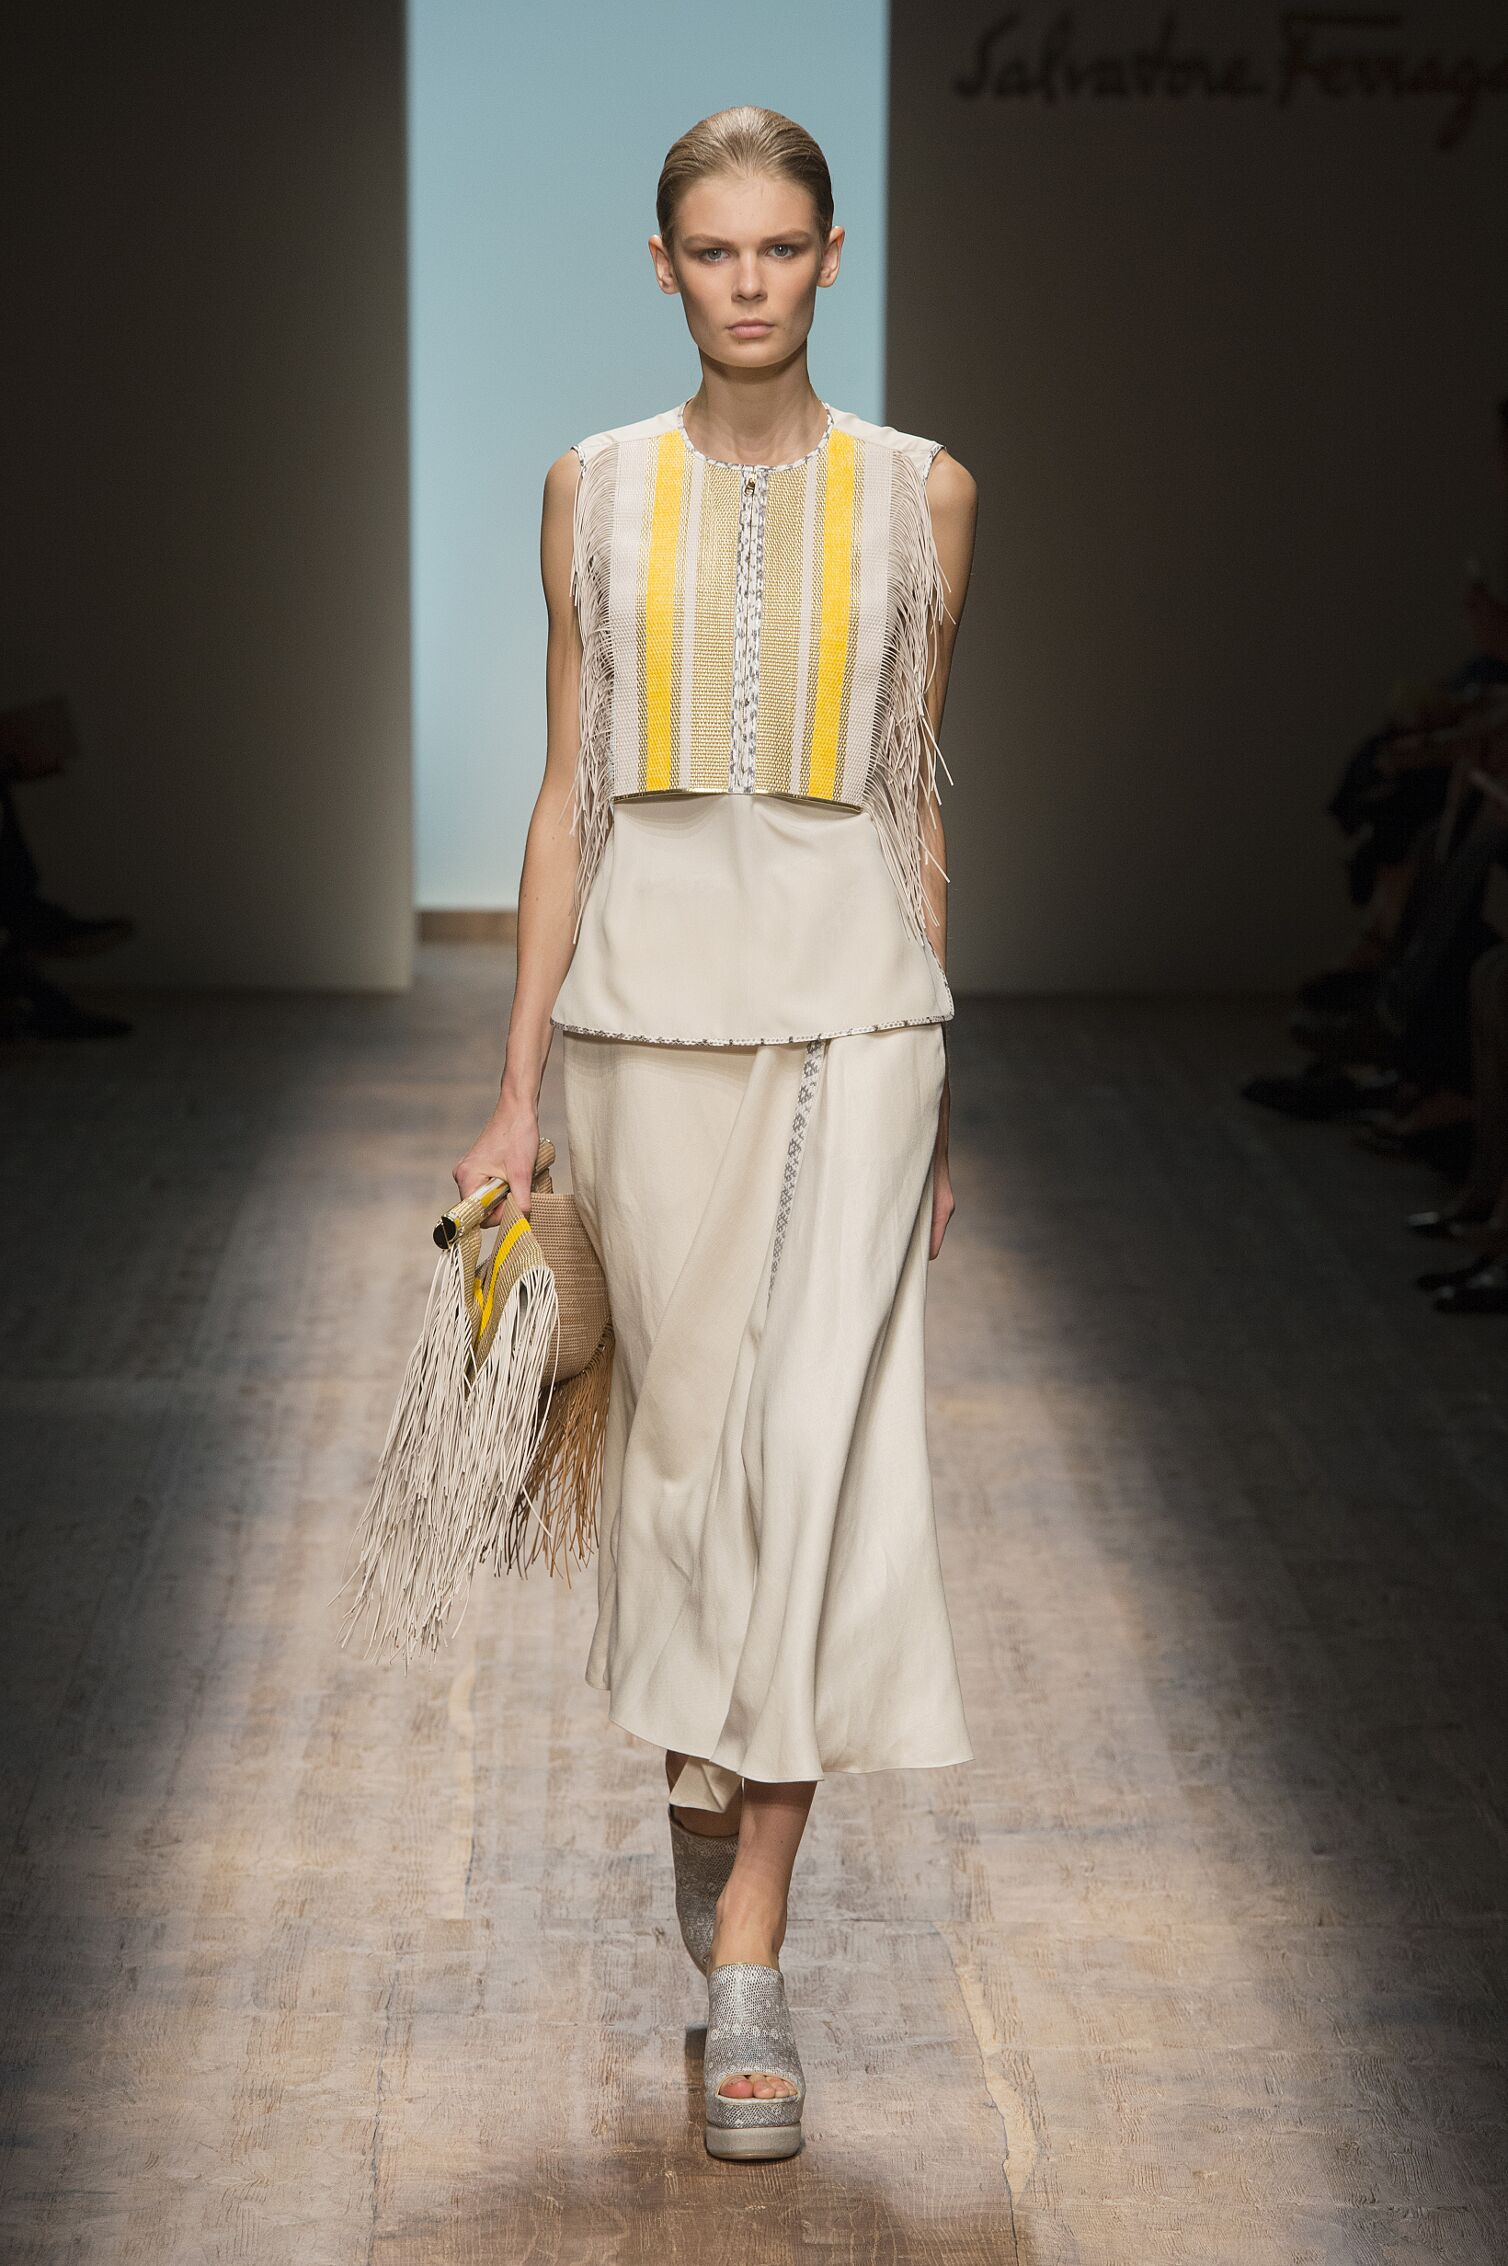 Spring 2015 Woman Fashion Show Salvatore Ferragamo